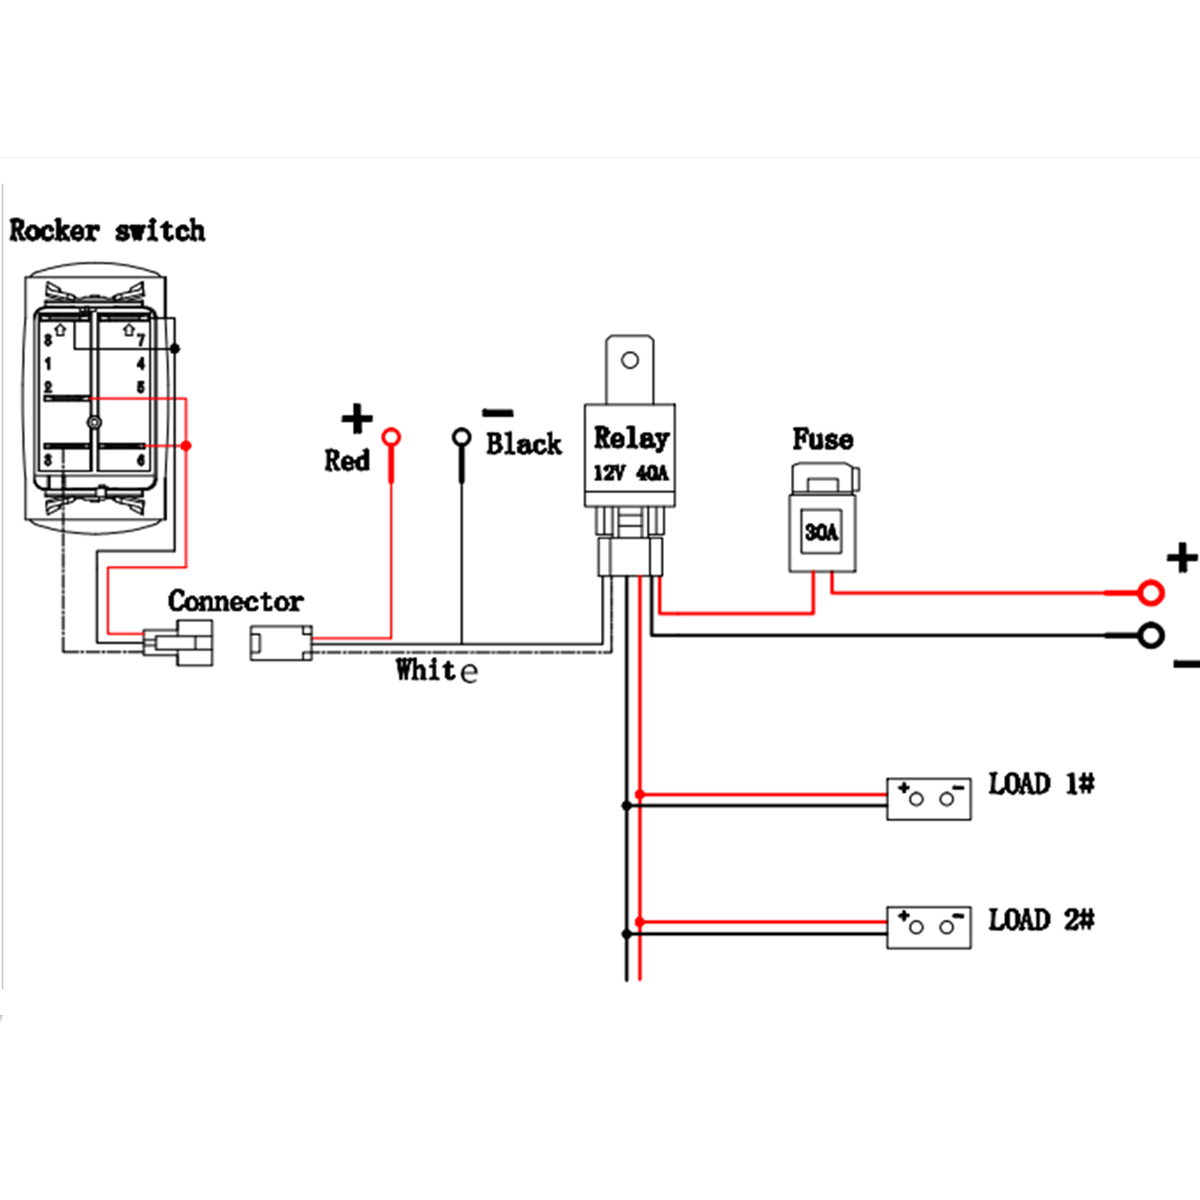 12V Relay Wiring Diagram Light - Wiring Diagrams Thumbs - Led Light Bar Wiring Diagram